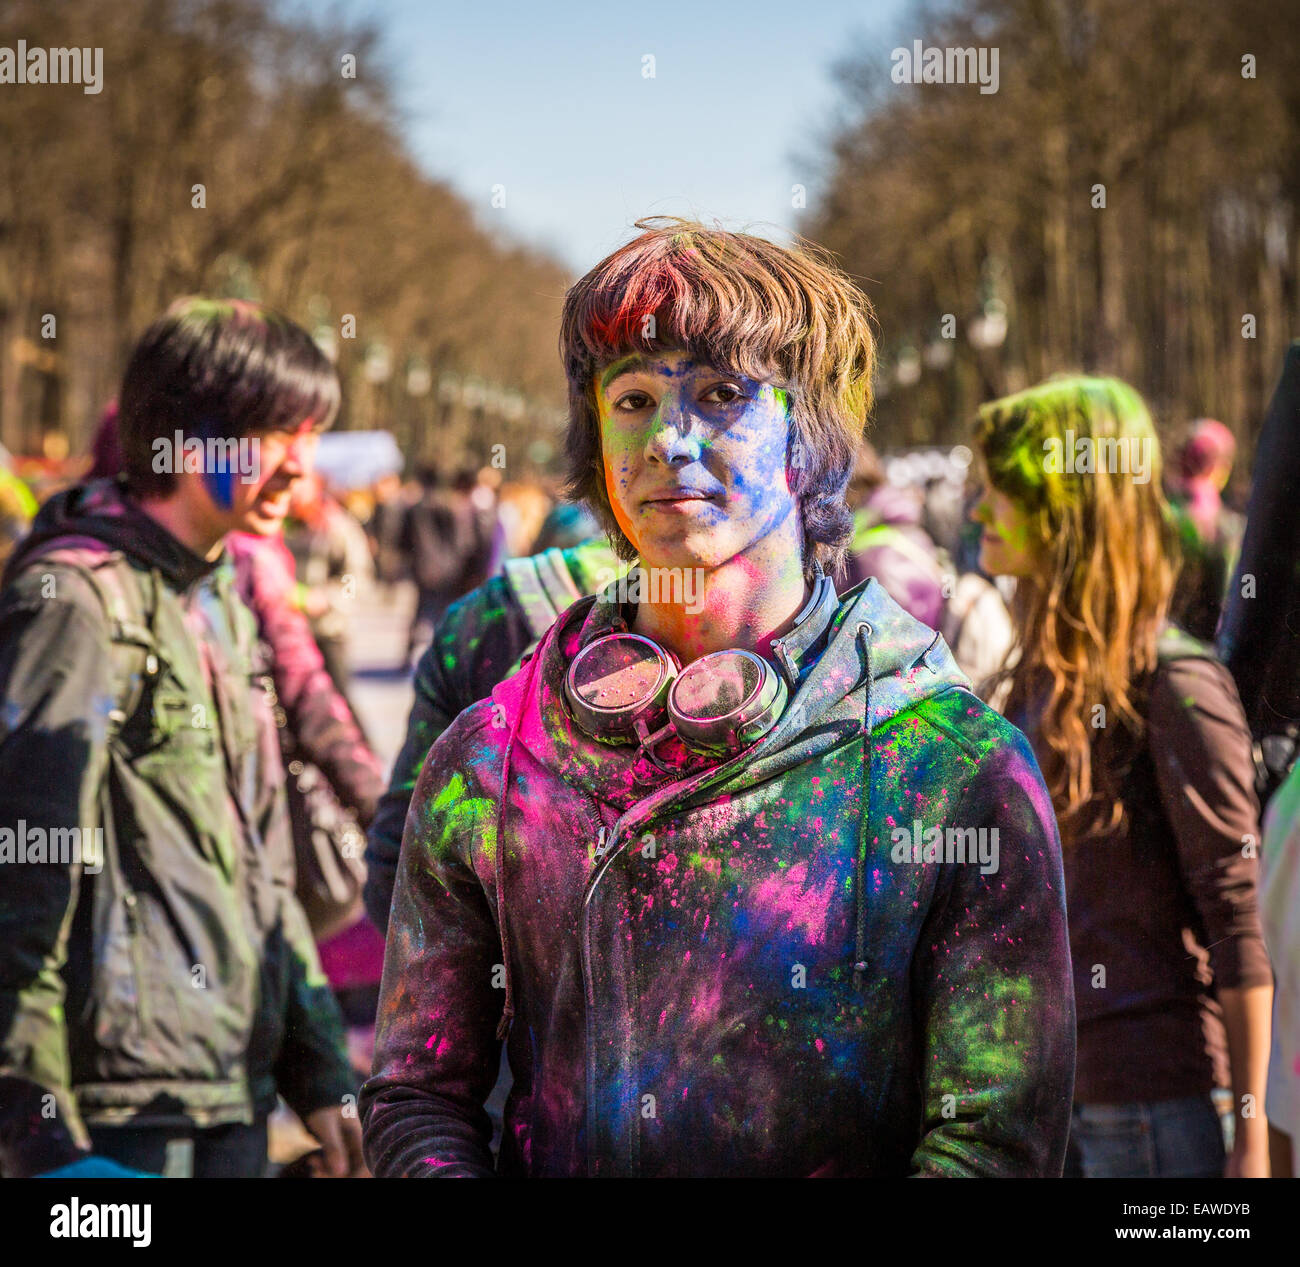 Image result for Holi holiday images